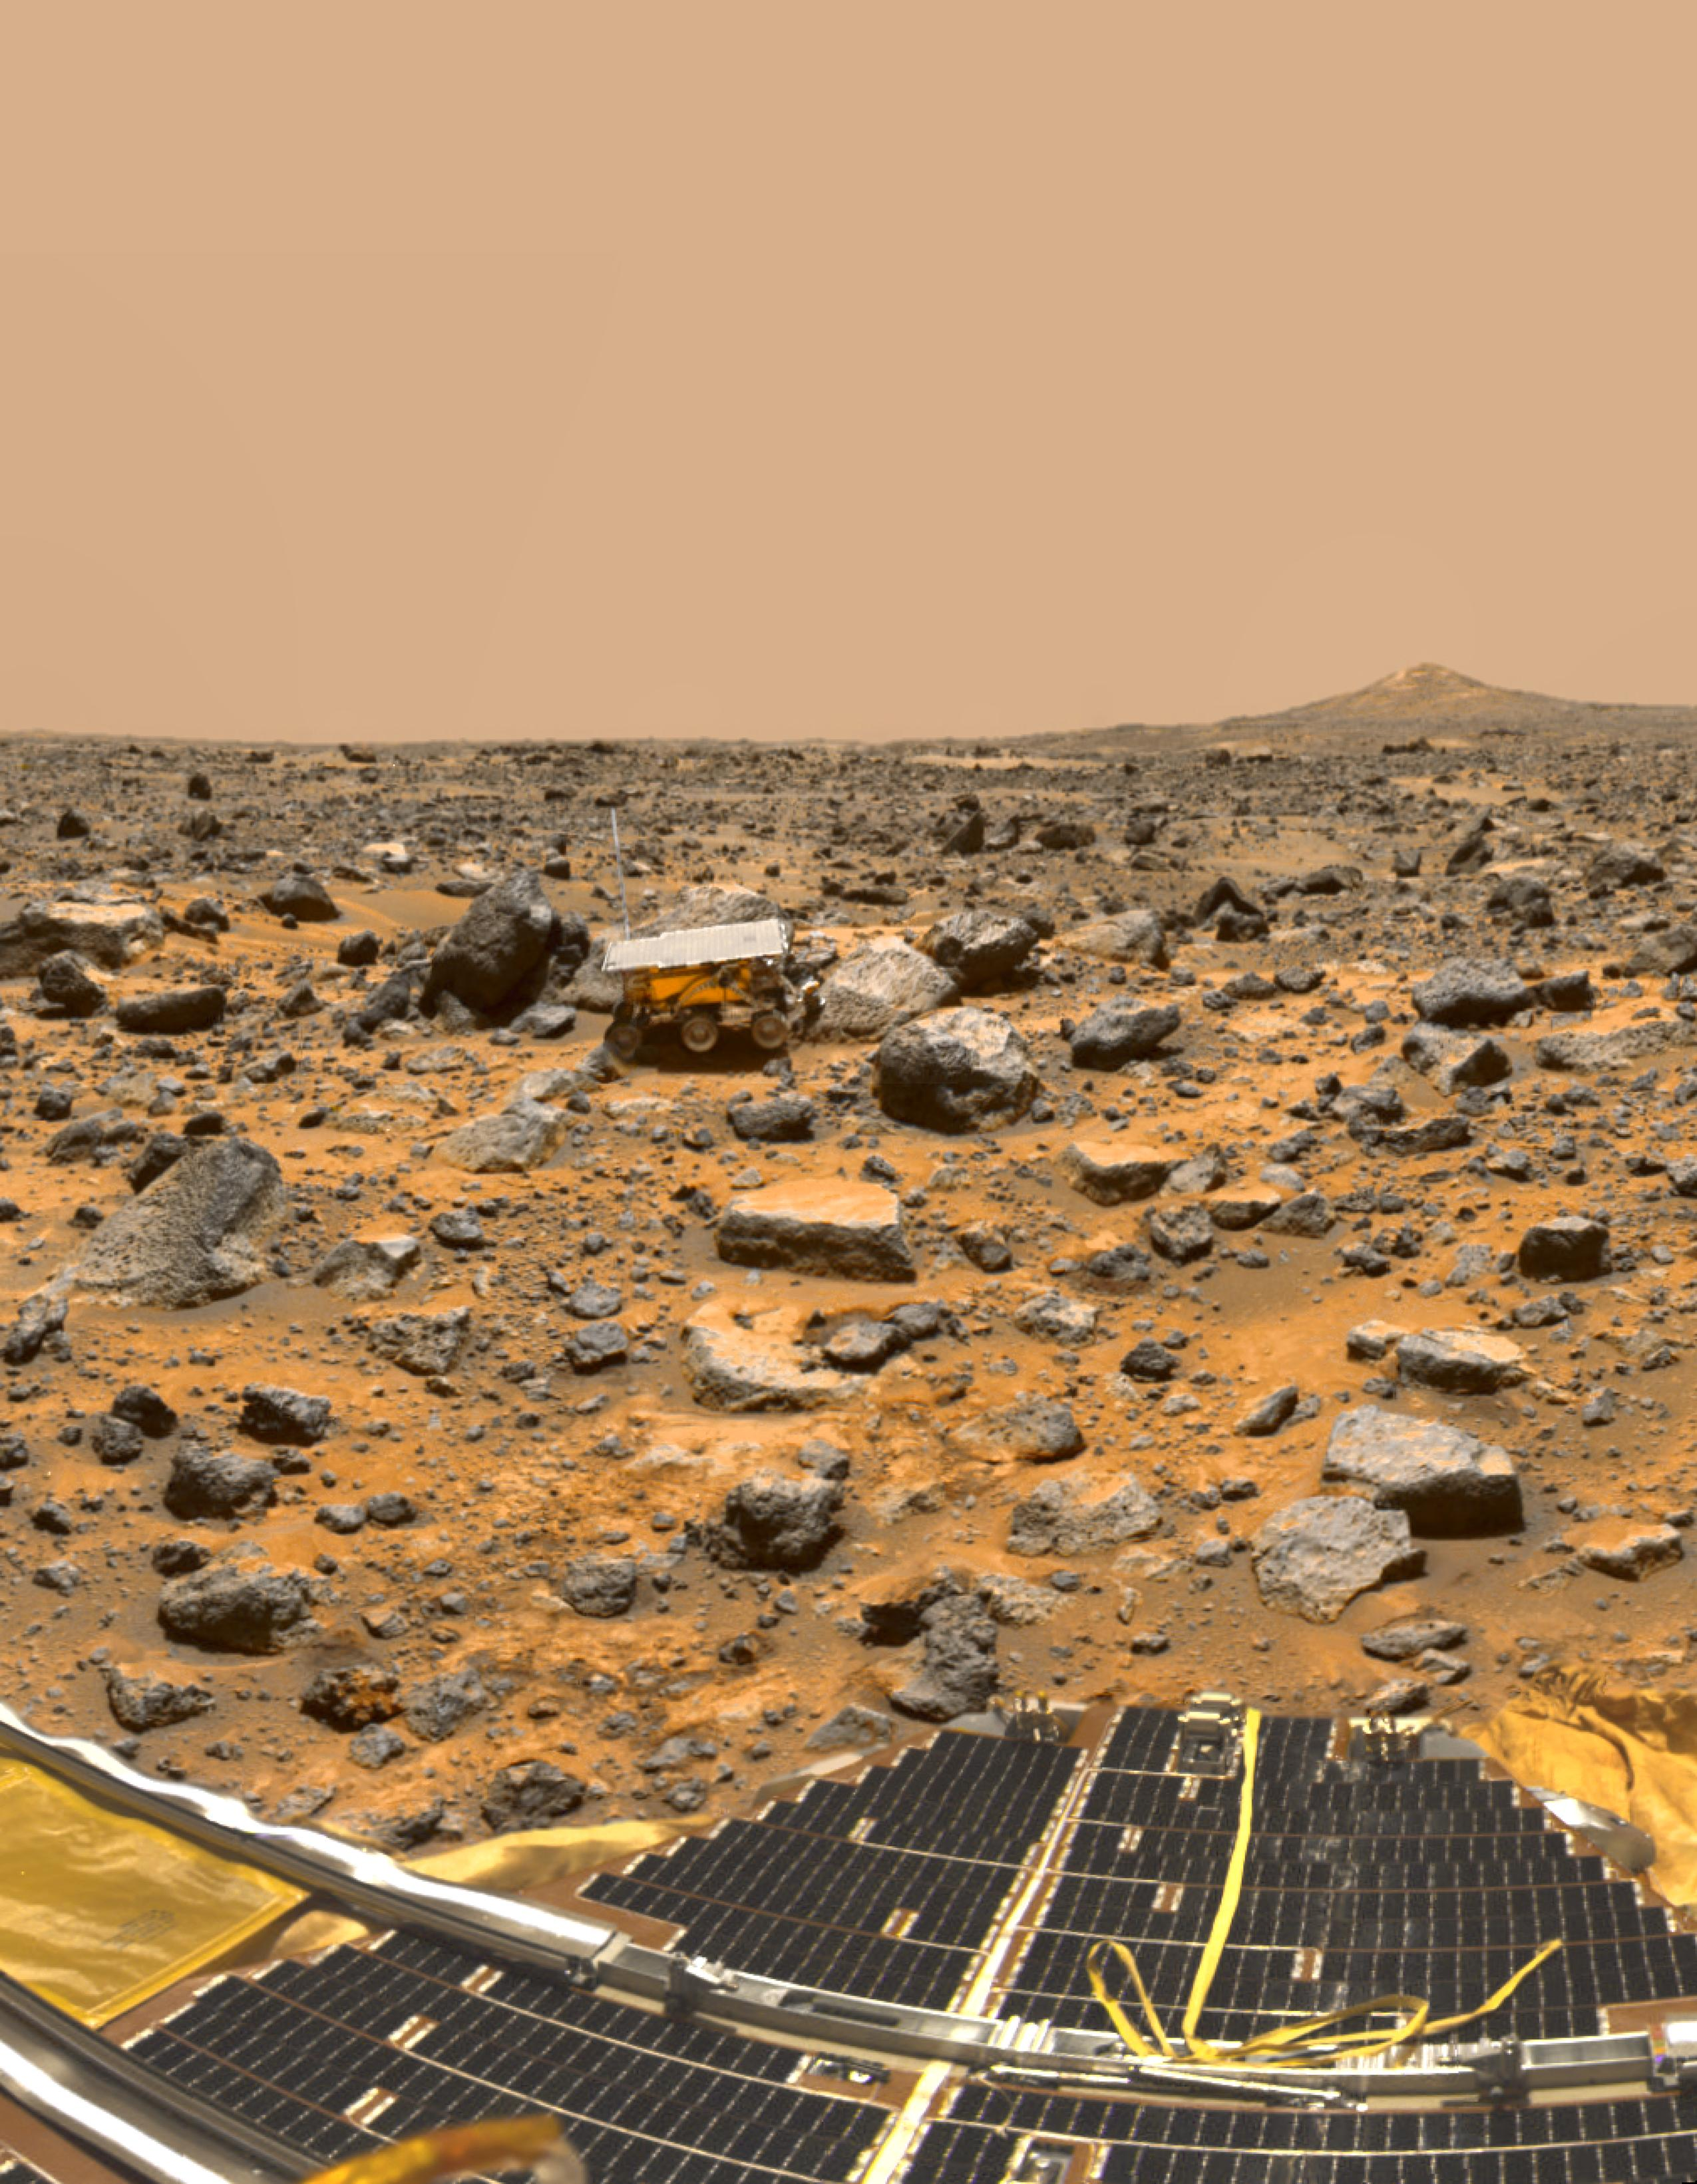 July 4, 1997: Sojourner Arrives on the Red Planet